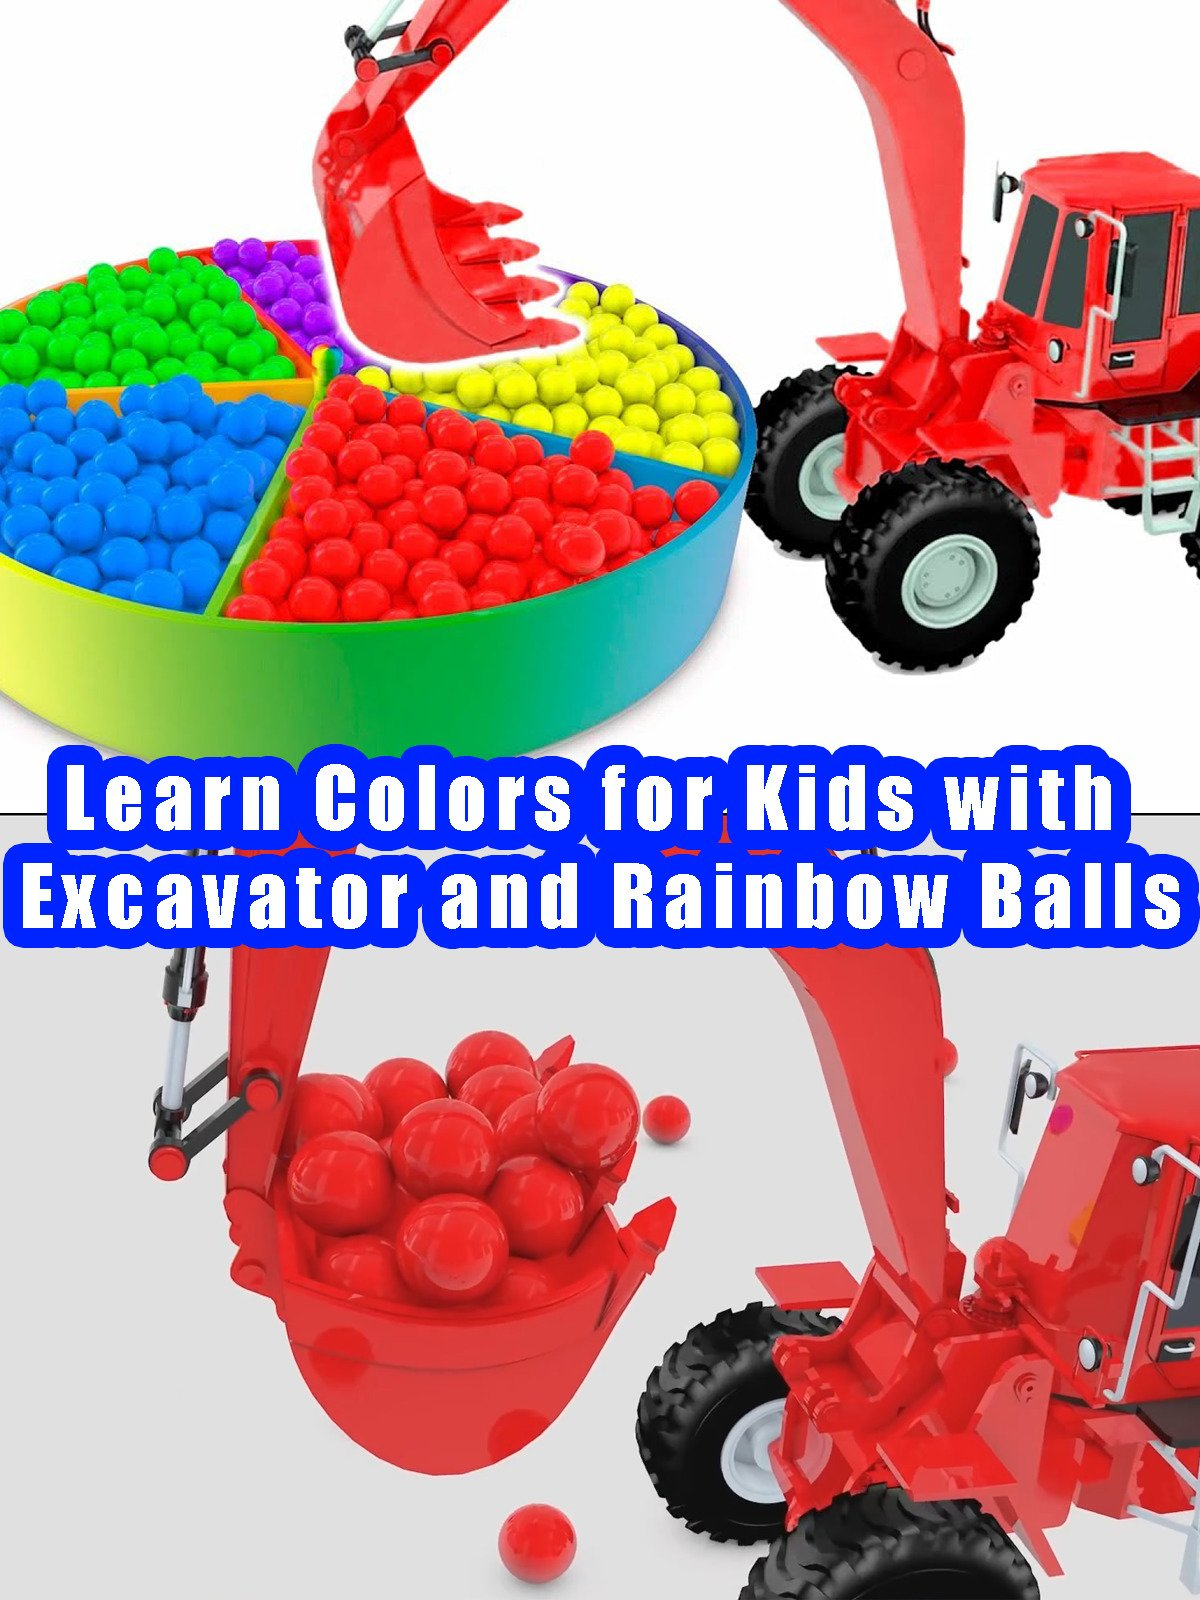 Learn Colors for Kids with Excavator and Rainbow Balls